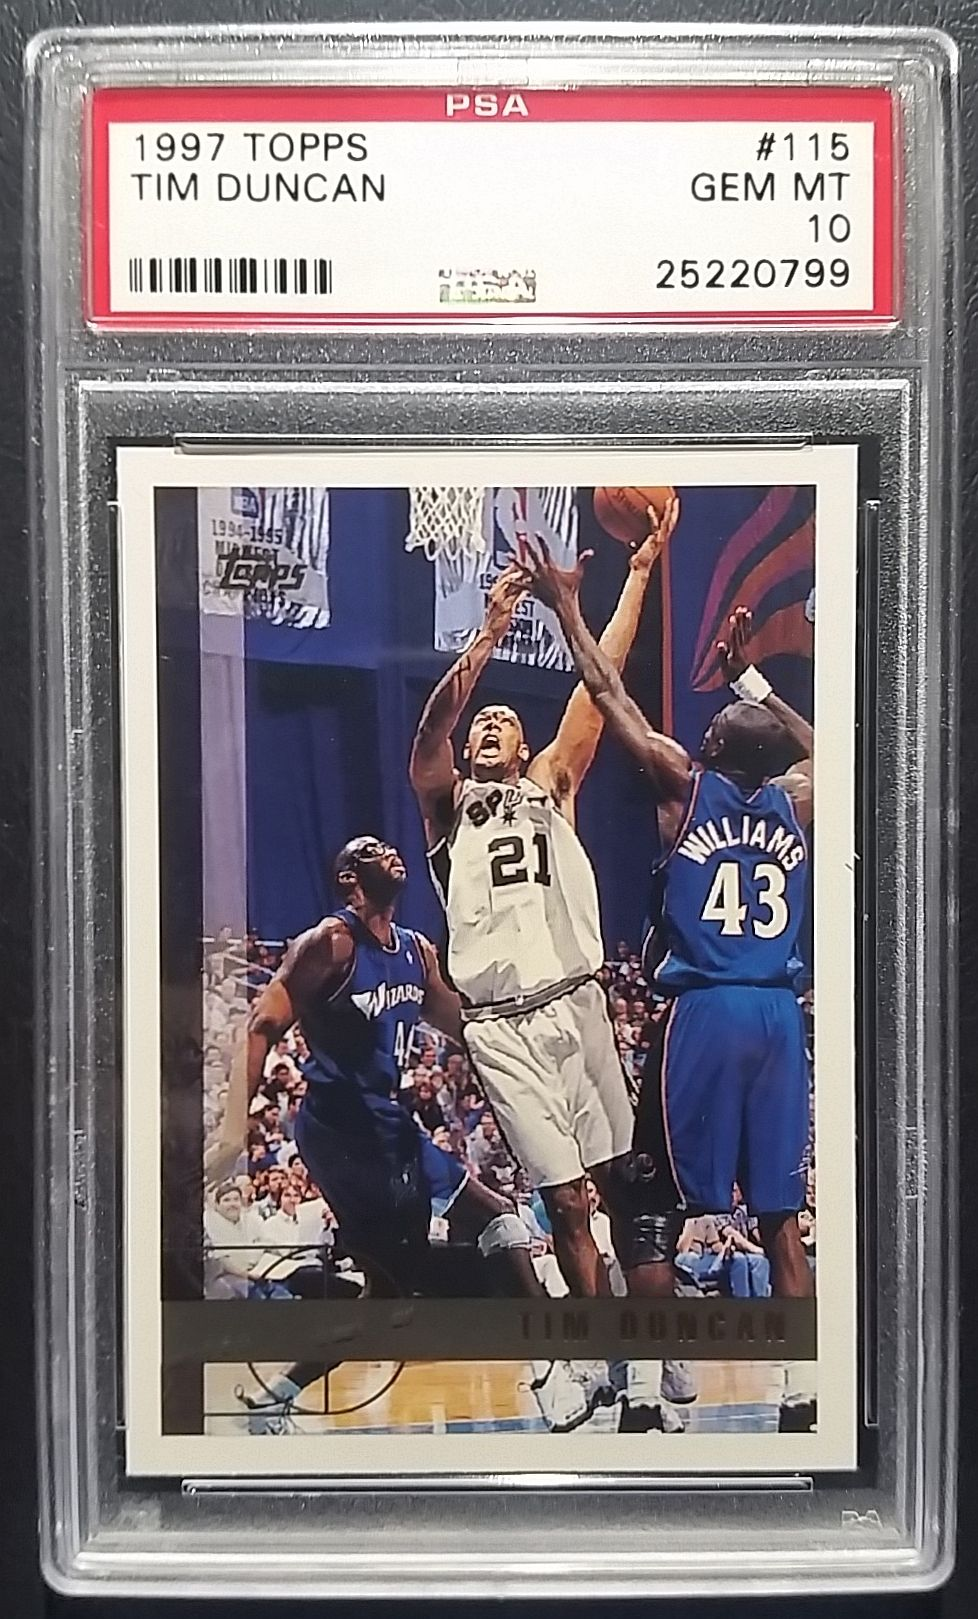 1997 Topps Basketball Tim Duncan Rookie Card Graded 10 Gem